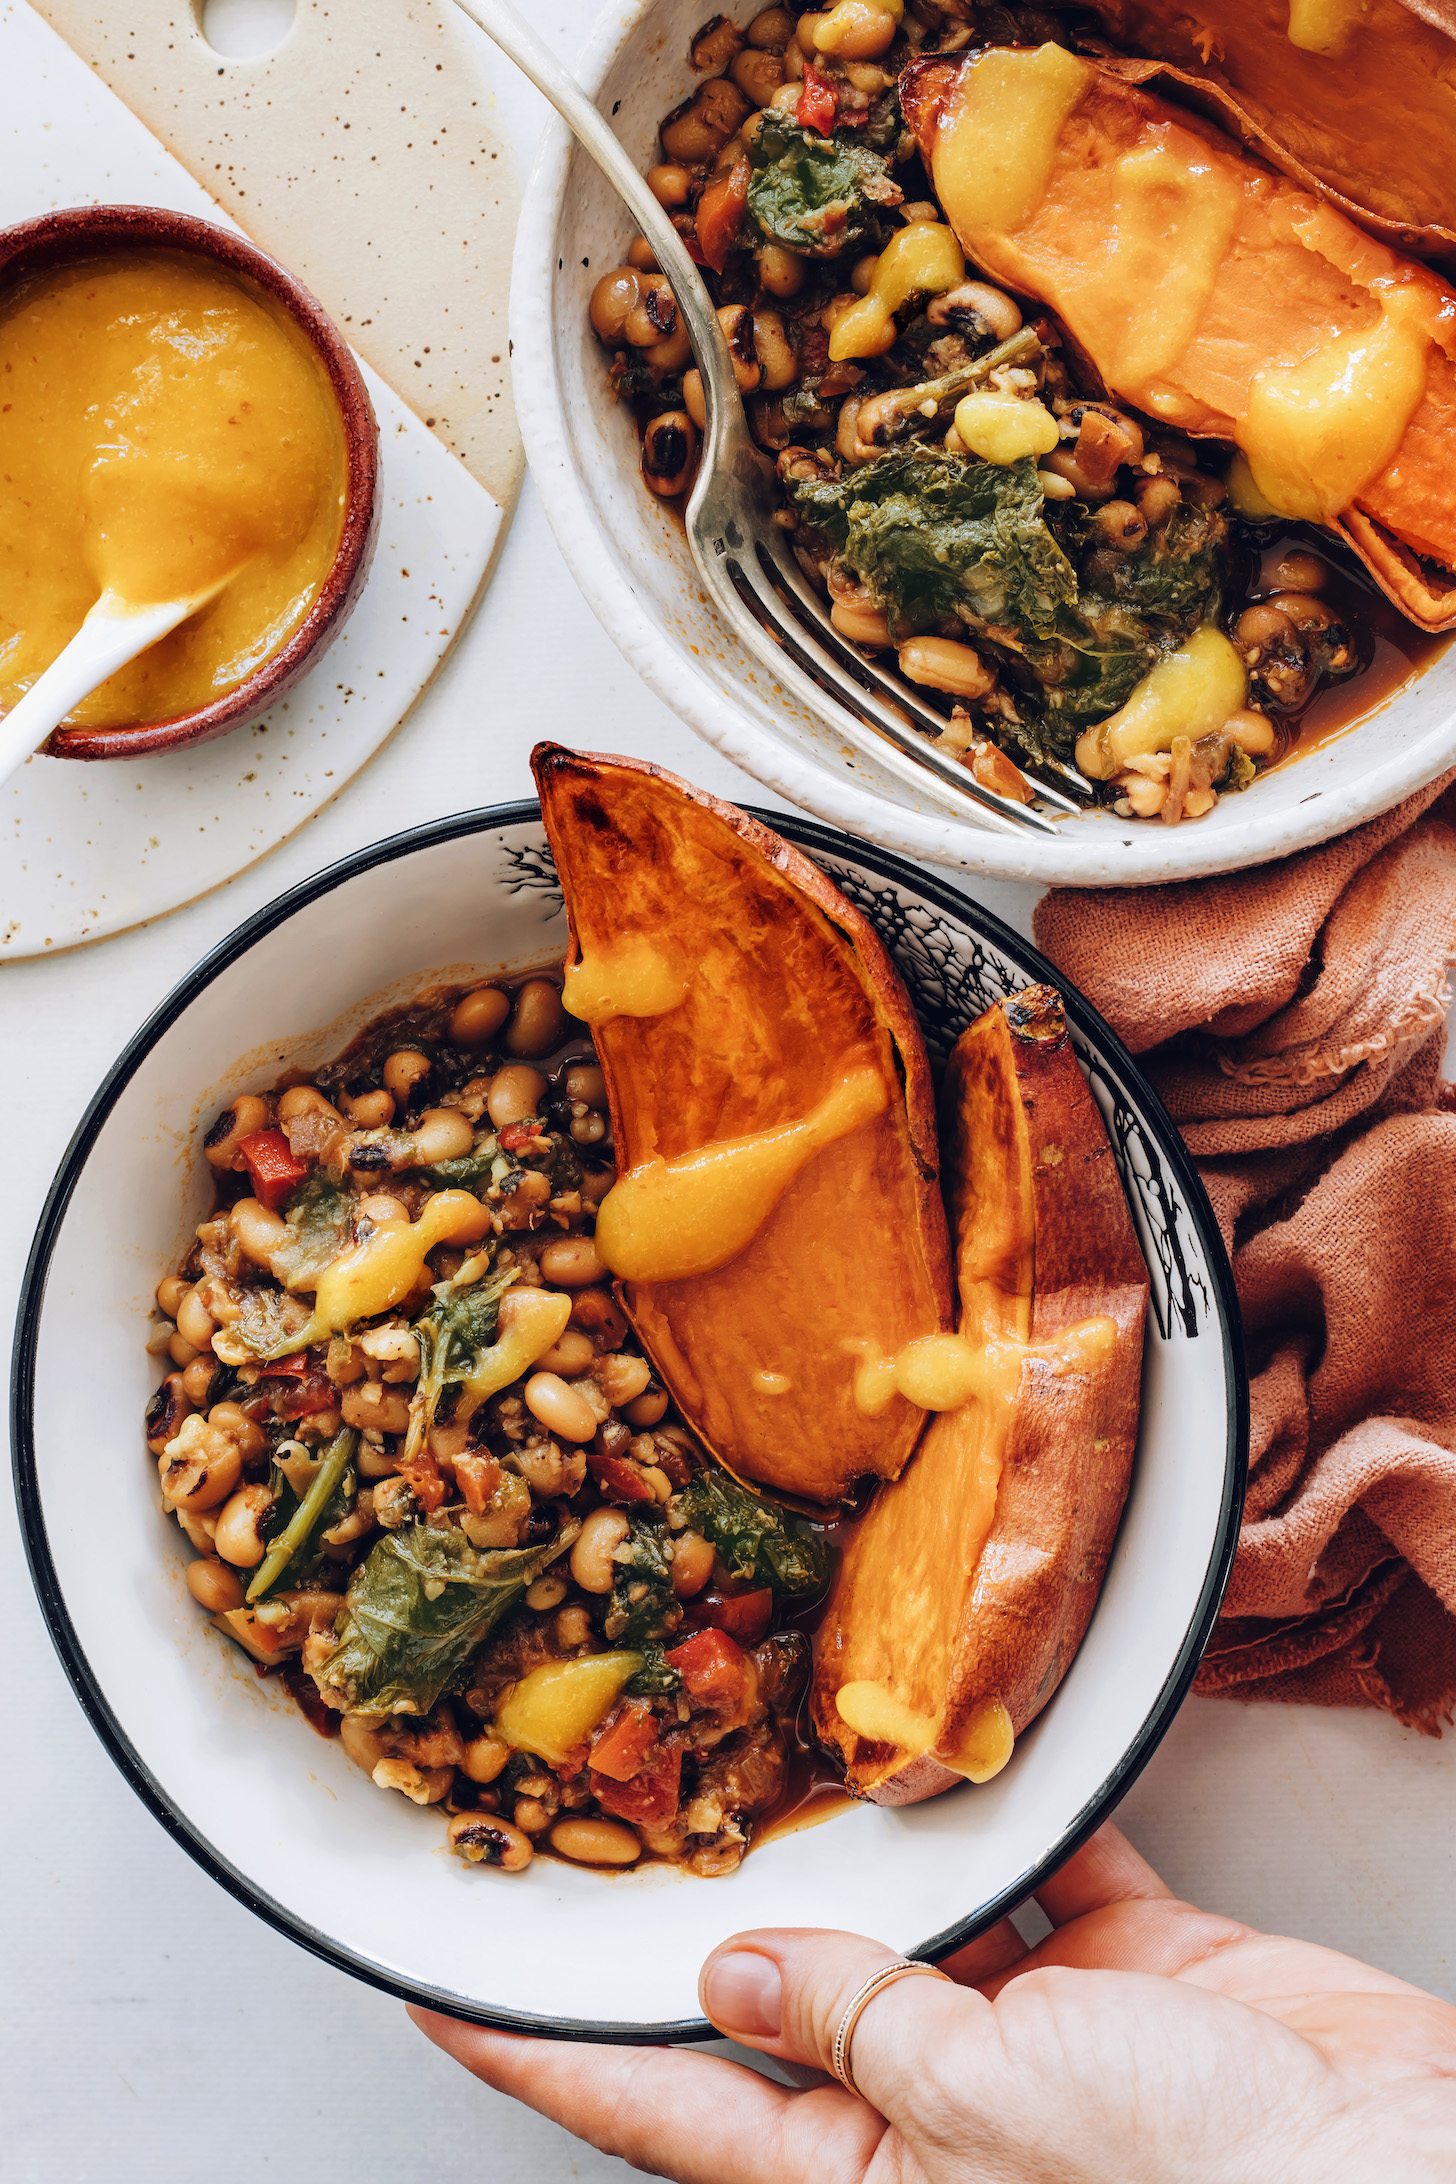 Holding a black eyed peas and greens nourish bowl with sweet potato and hot sauce